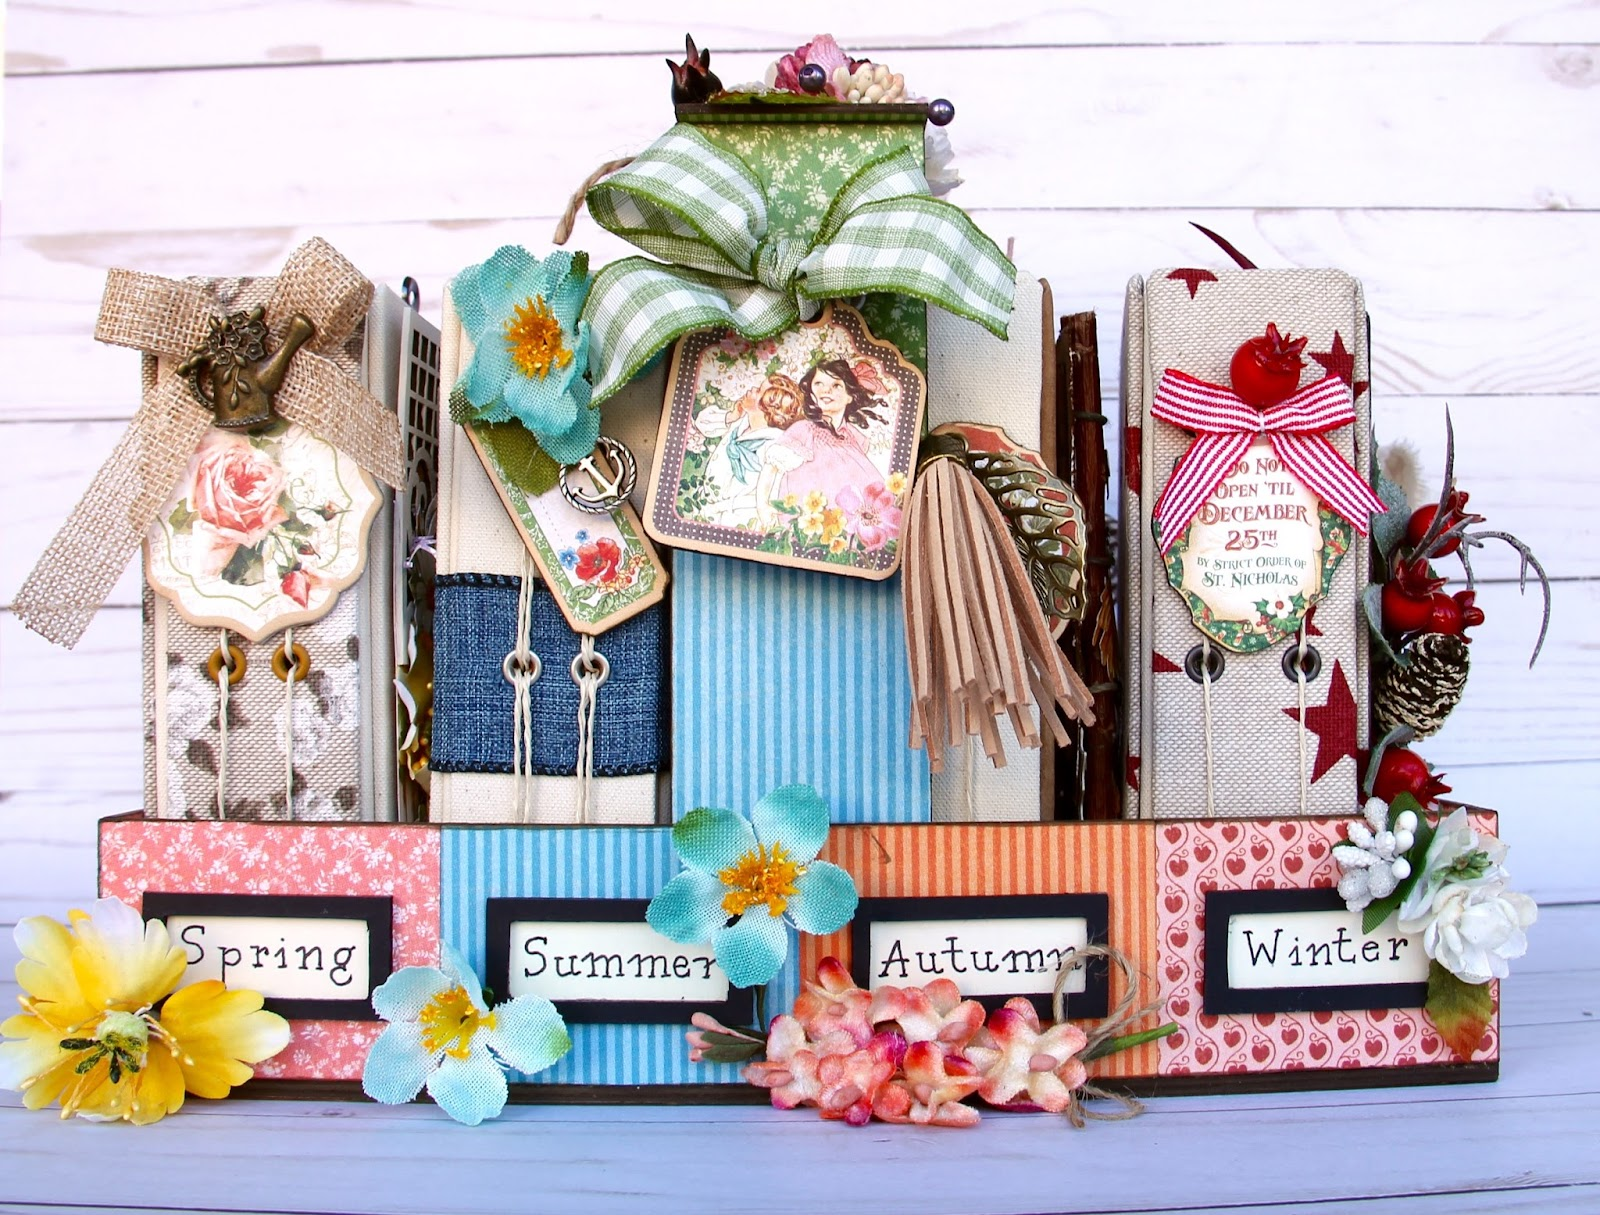 Four seasons Diary Stand G45 Collections Tutorial by Marina Blaukitchen Product by Graphic 45 photo 1.jpg